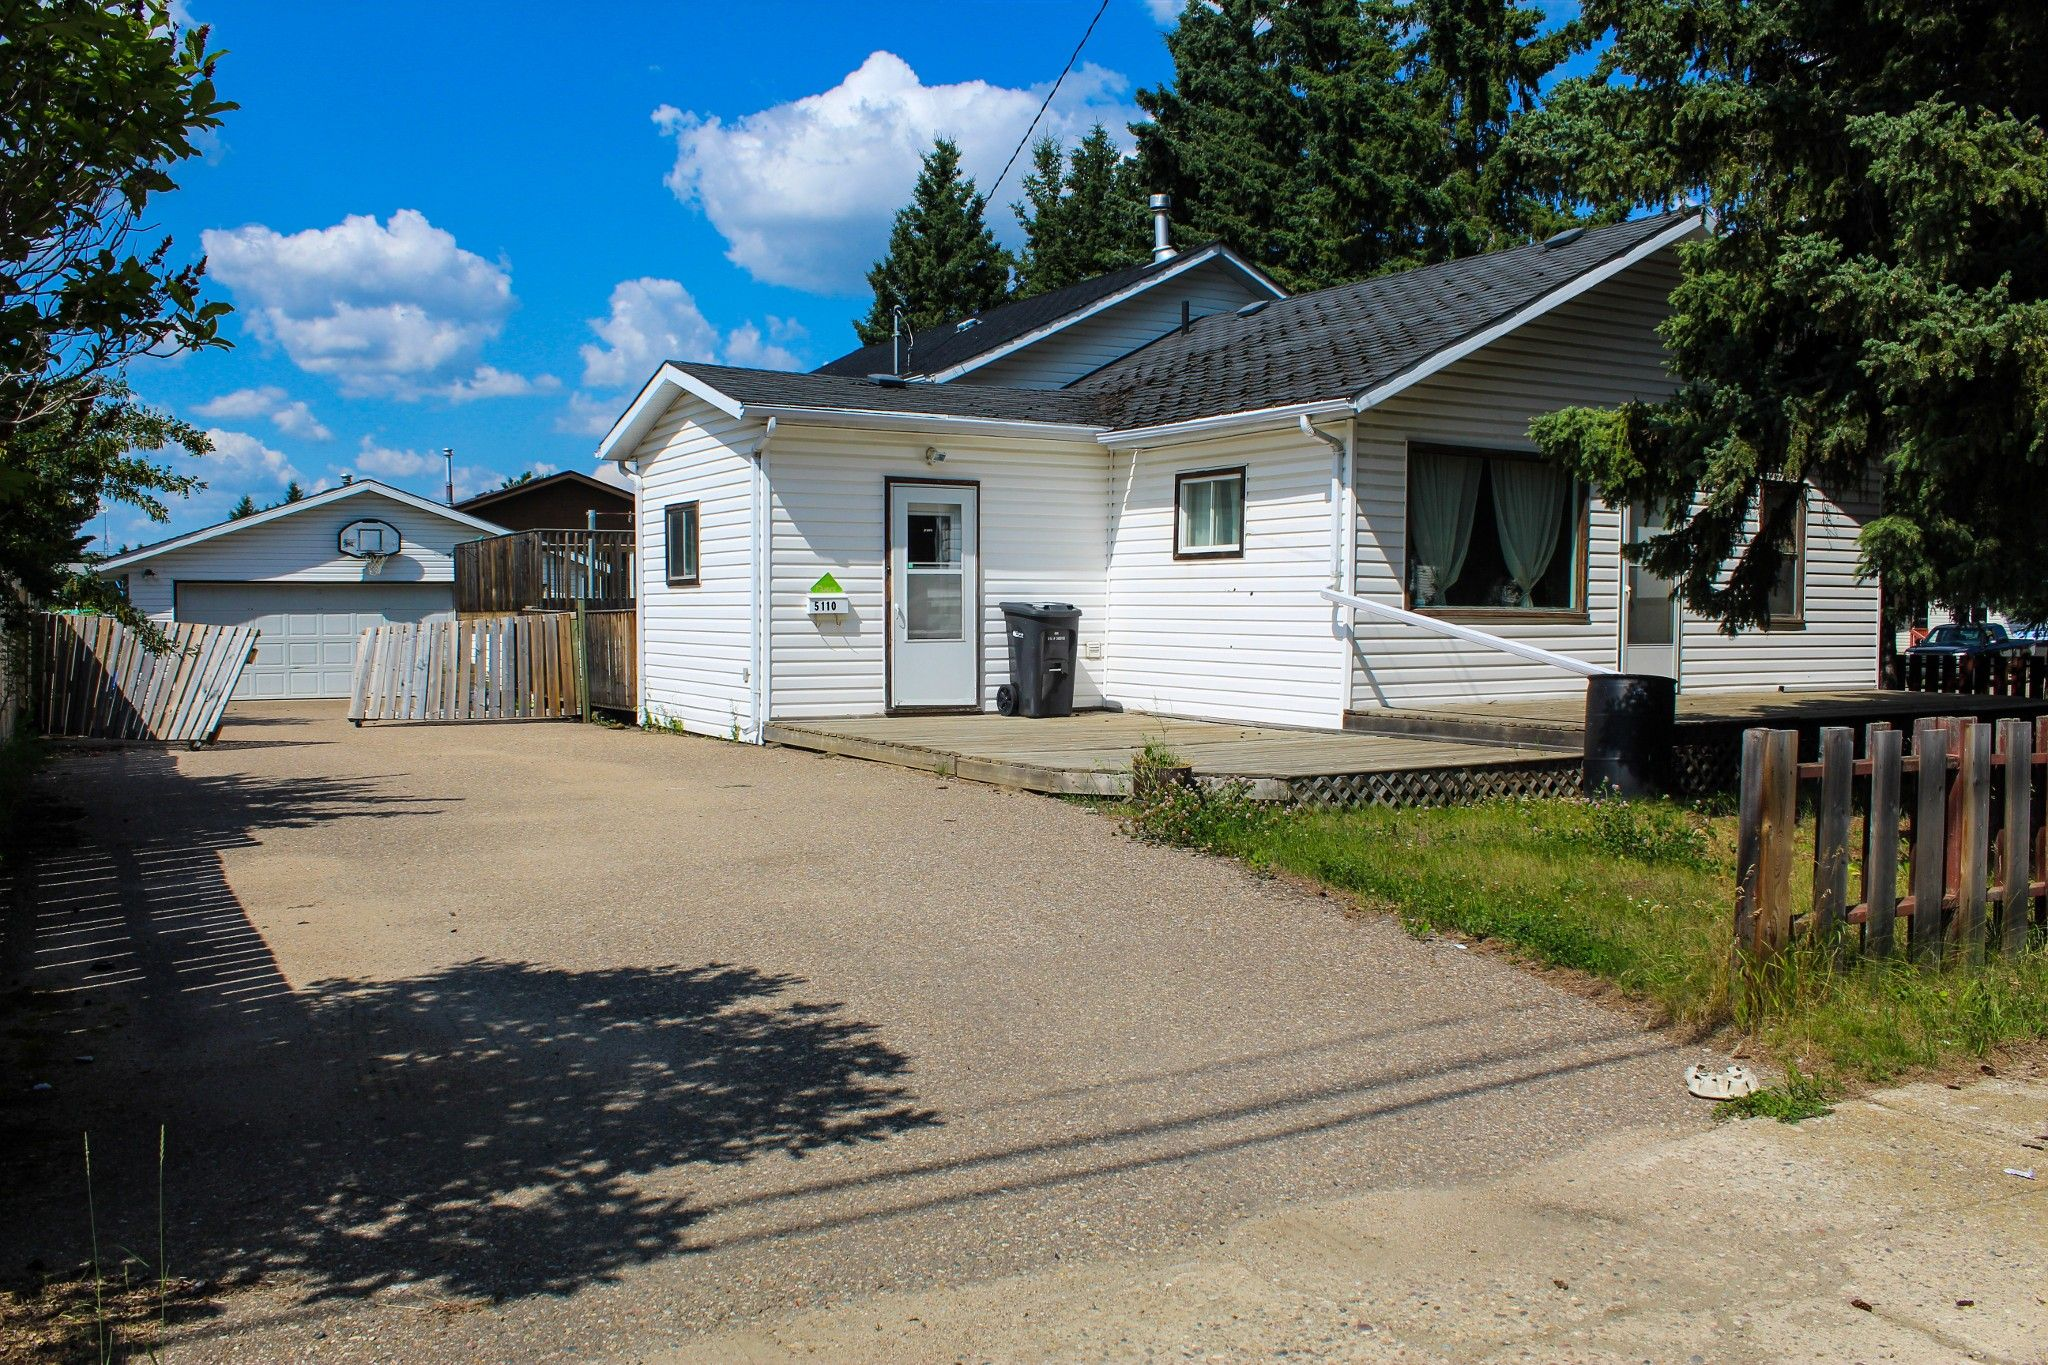 Main Photo: 5110 58 Street in Cold Lake: House for sale : MLS®# E4211095